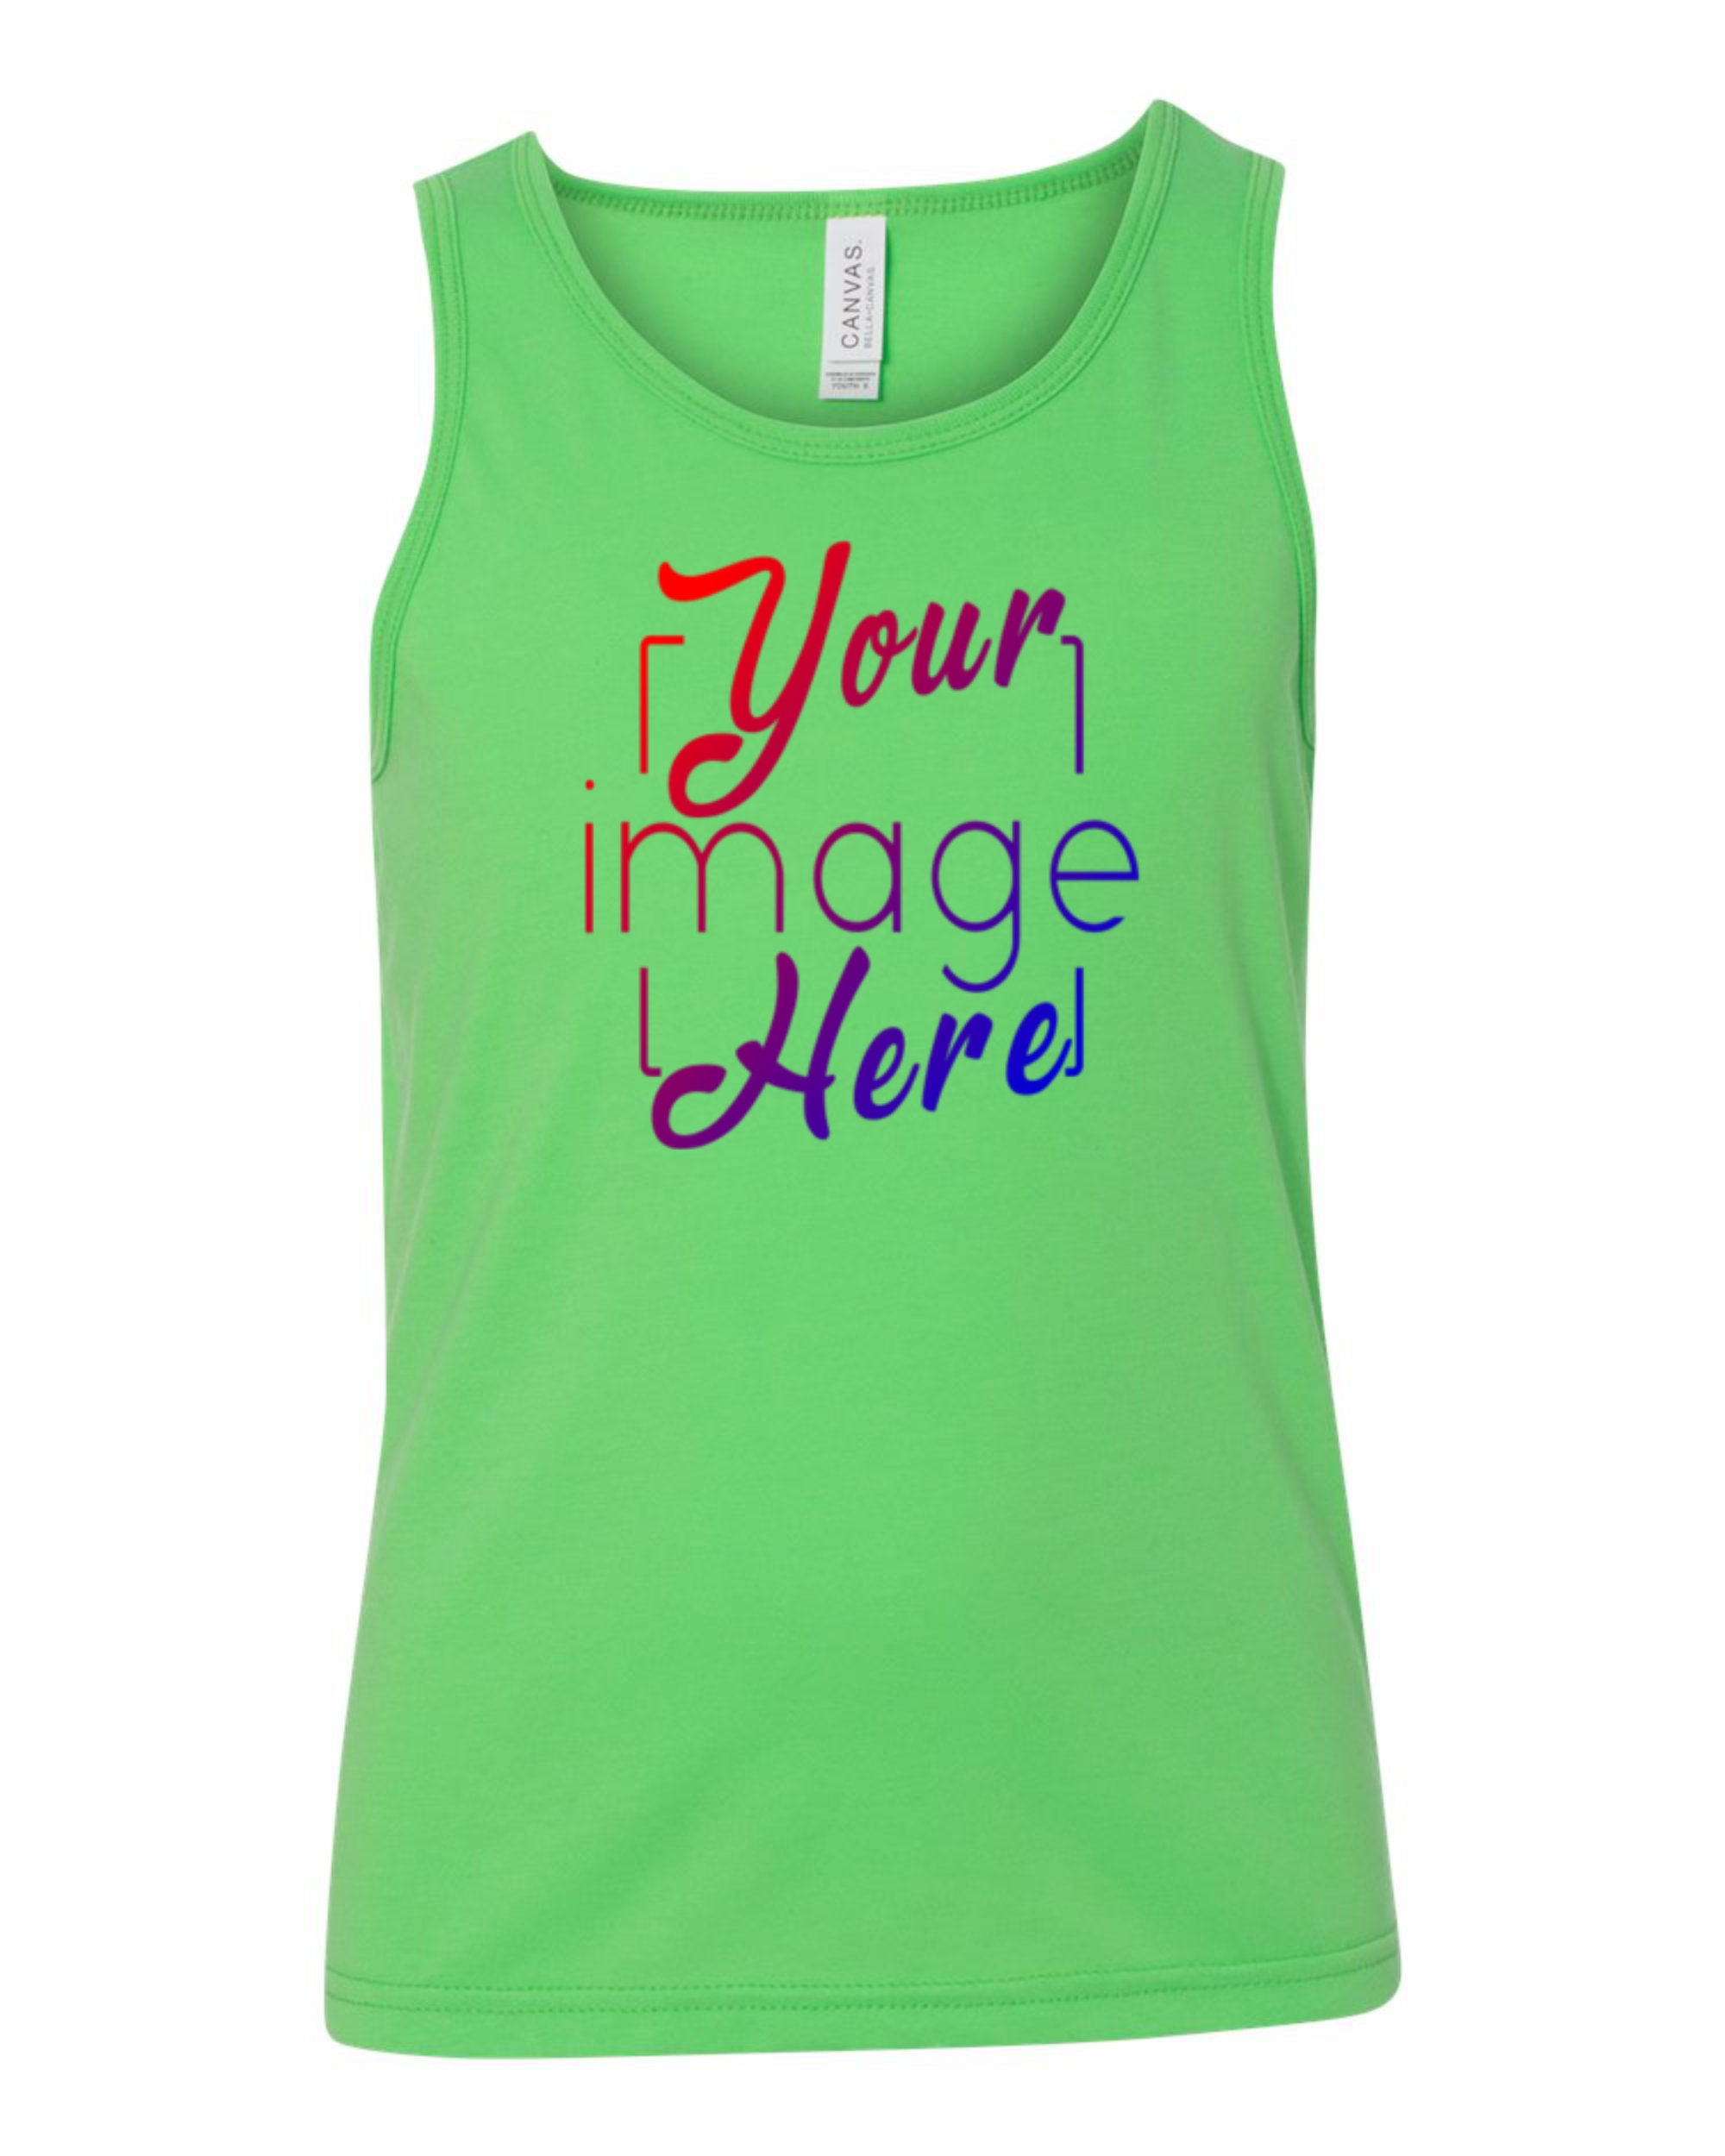 Front Image of a Youth Tank Top for Custom Printing